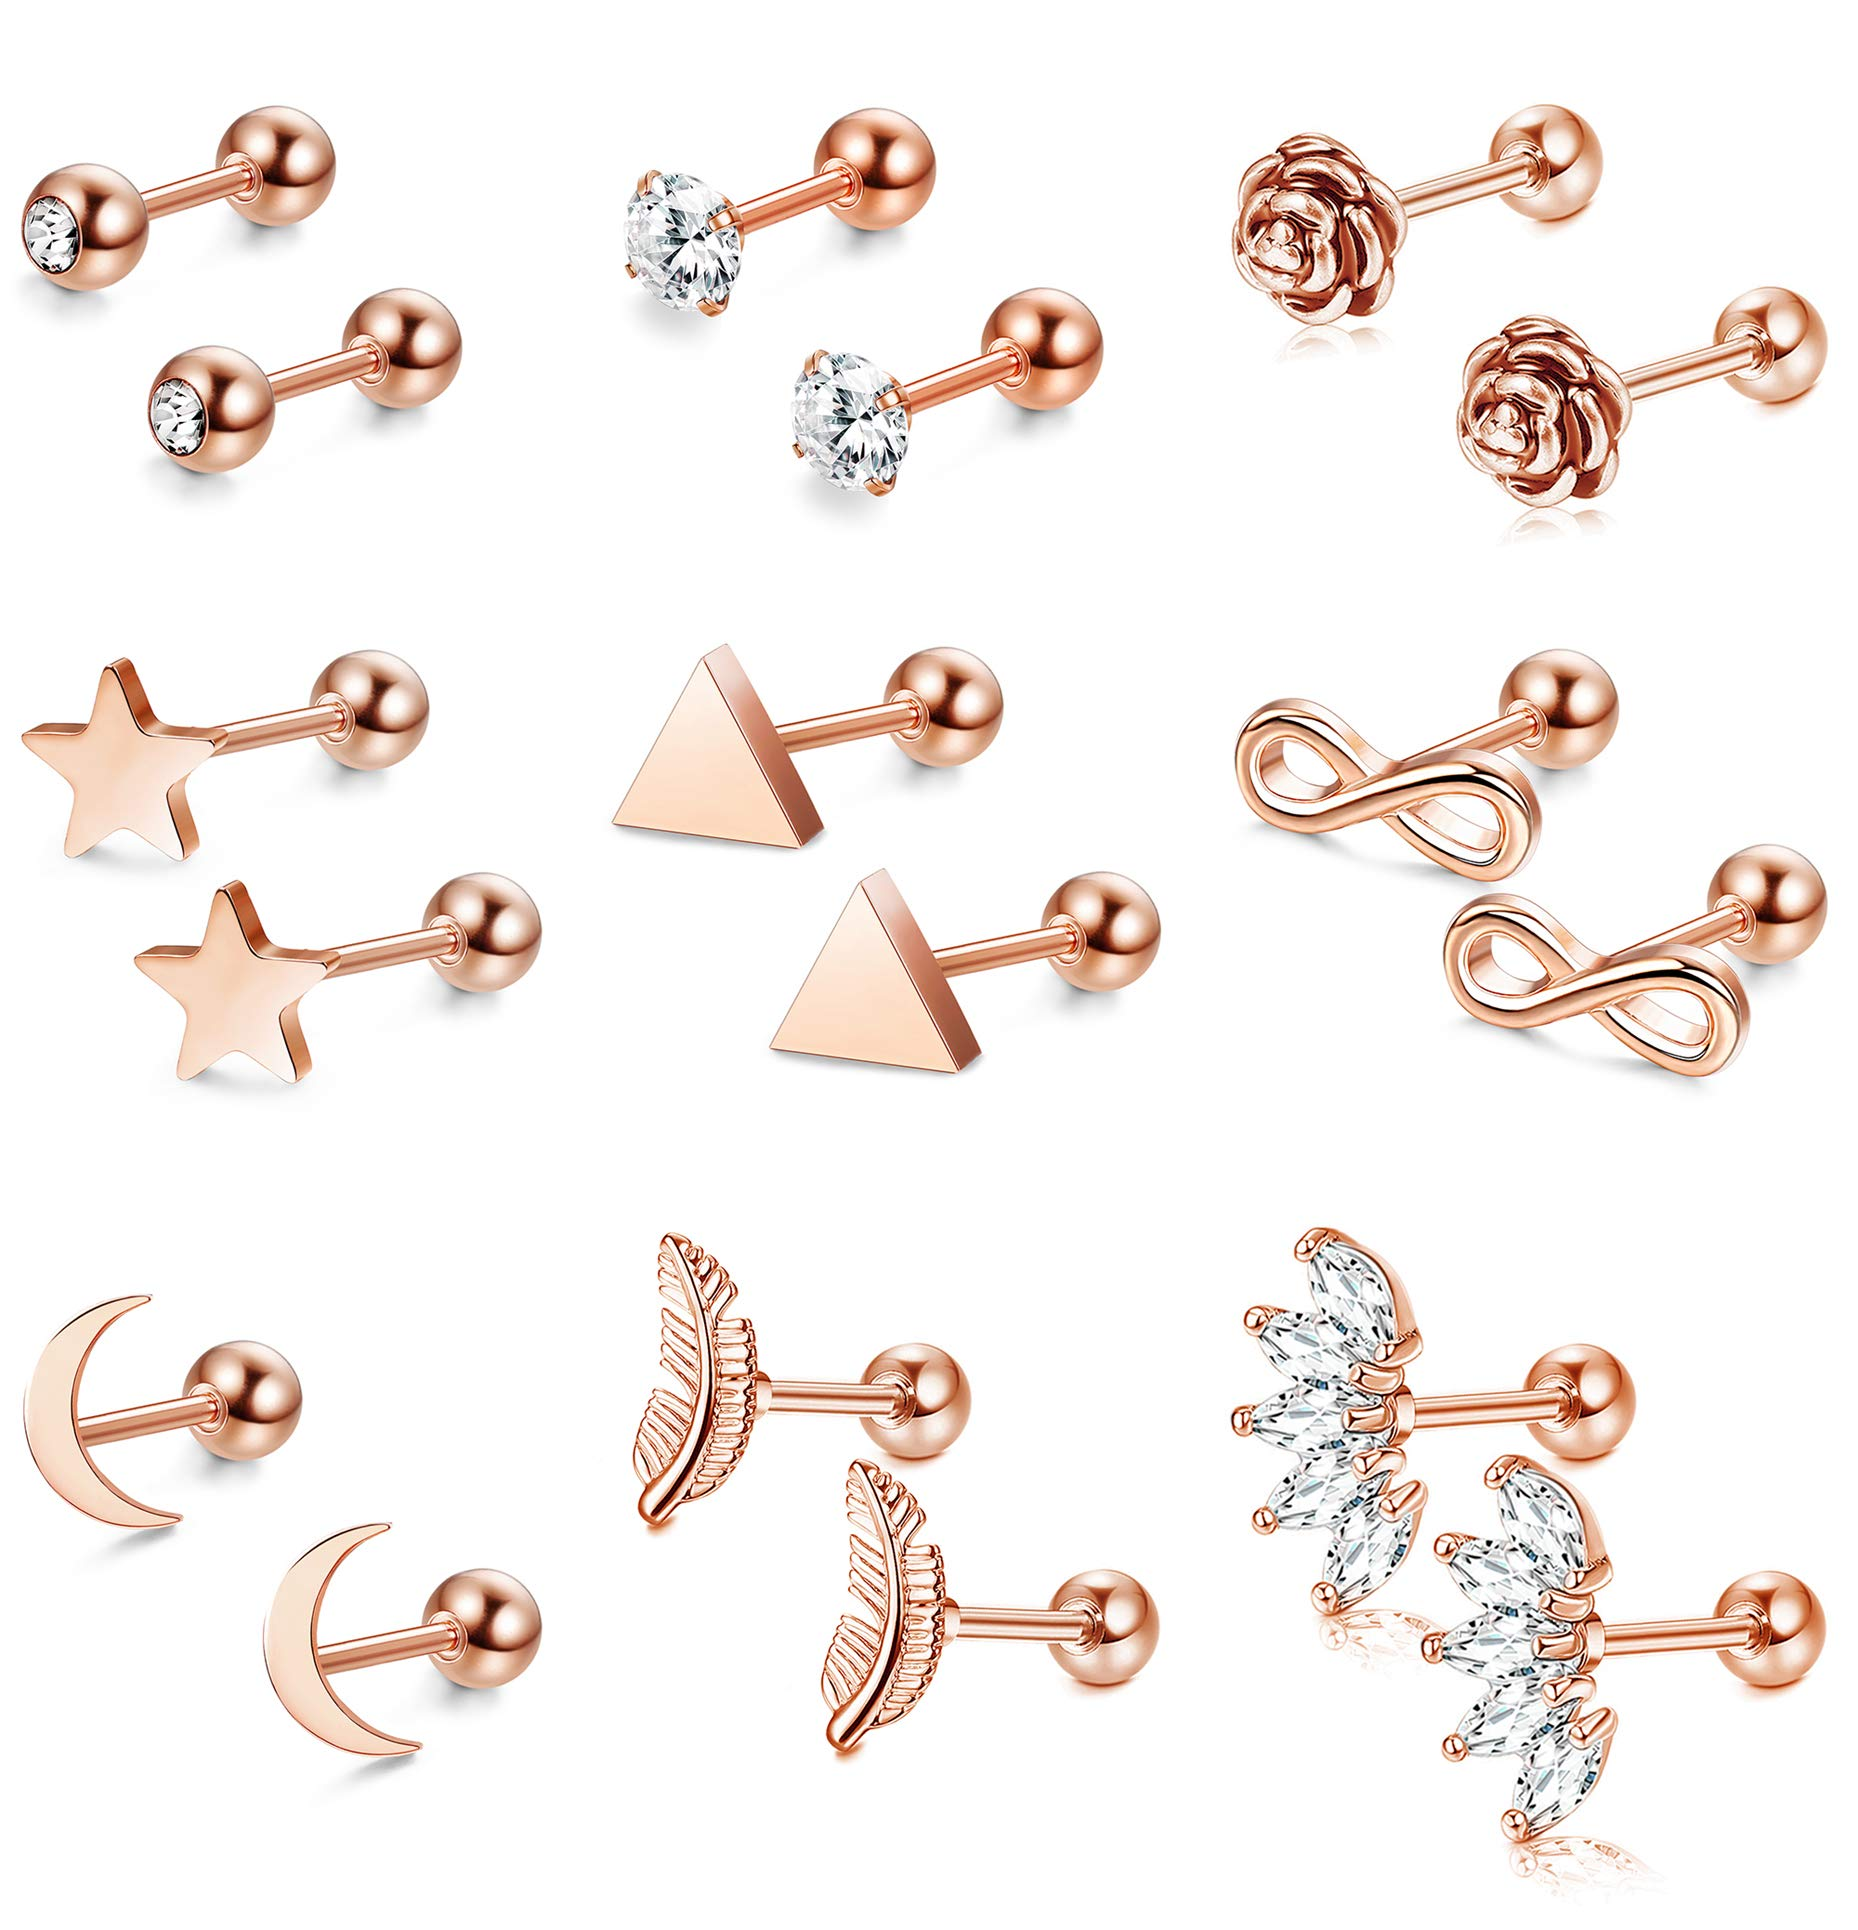 SAILIMUE 9 Pairs 16G Stainless Steel Ear Cartilage Earrings Tragus Helix Conch Piercing Jewelry Set Flower Feather Moon Triangle Star CZ Earrings for Women Girls by SAILIMUE